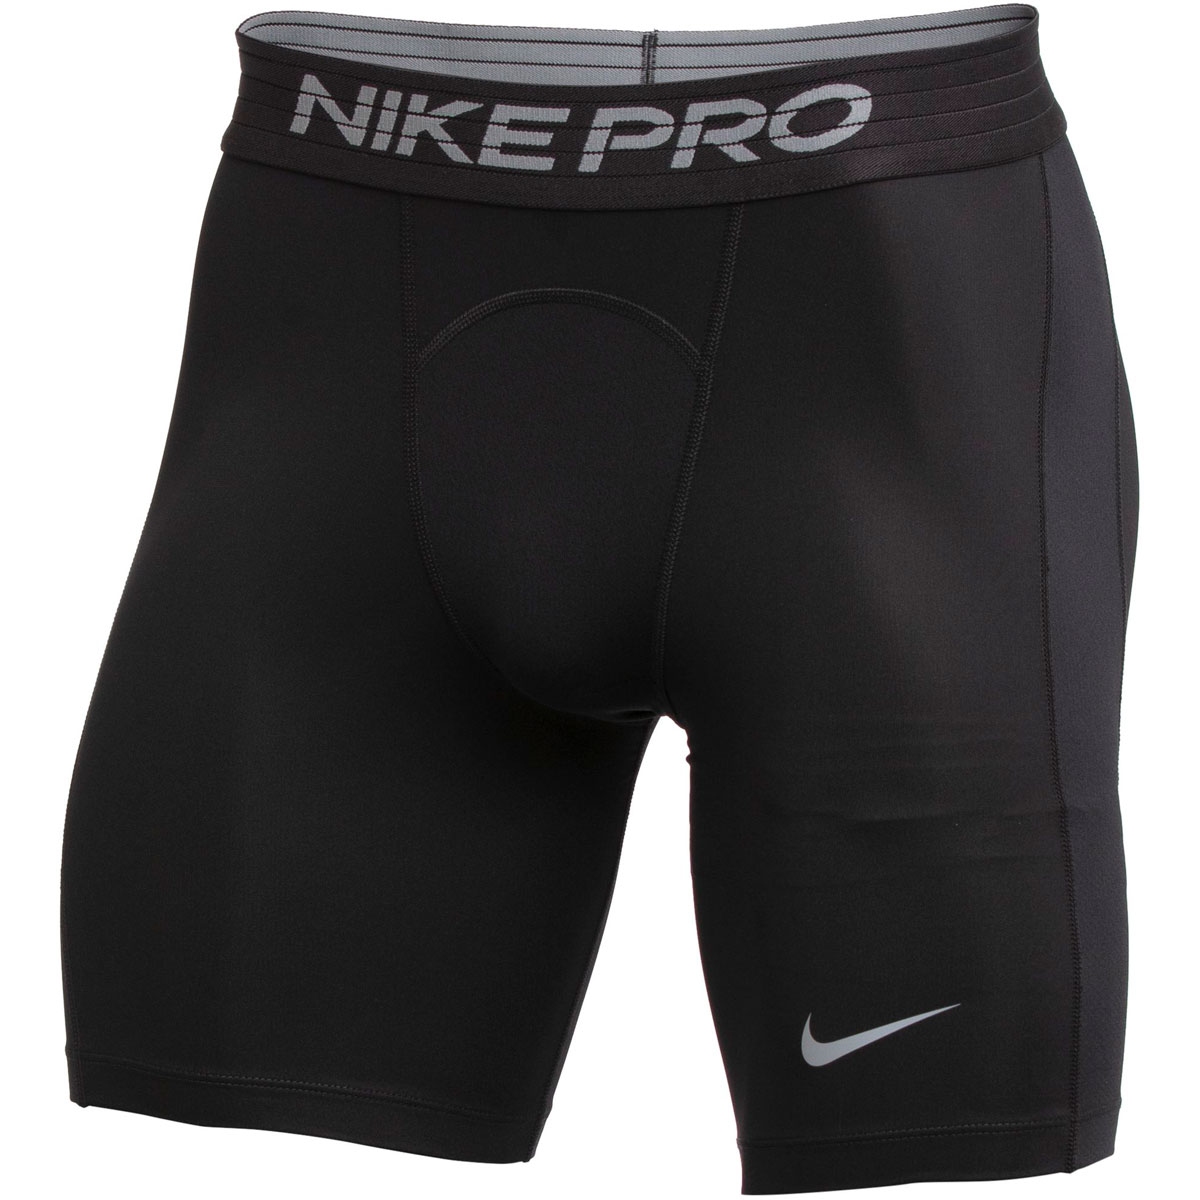 Men's Nike Pro Shorts - Color: Black/Cool Grey - Size: LT, Black/Cool Grey, large, image 1